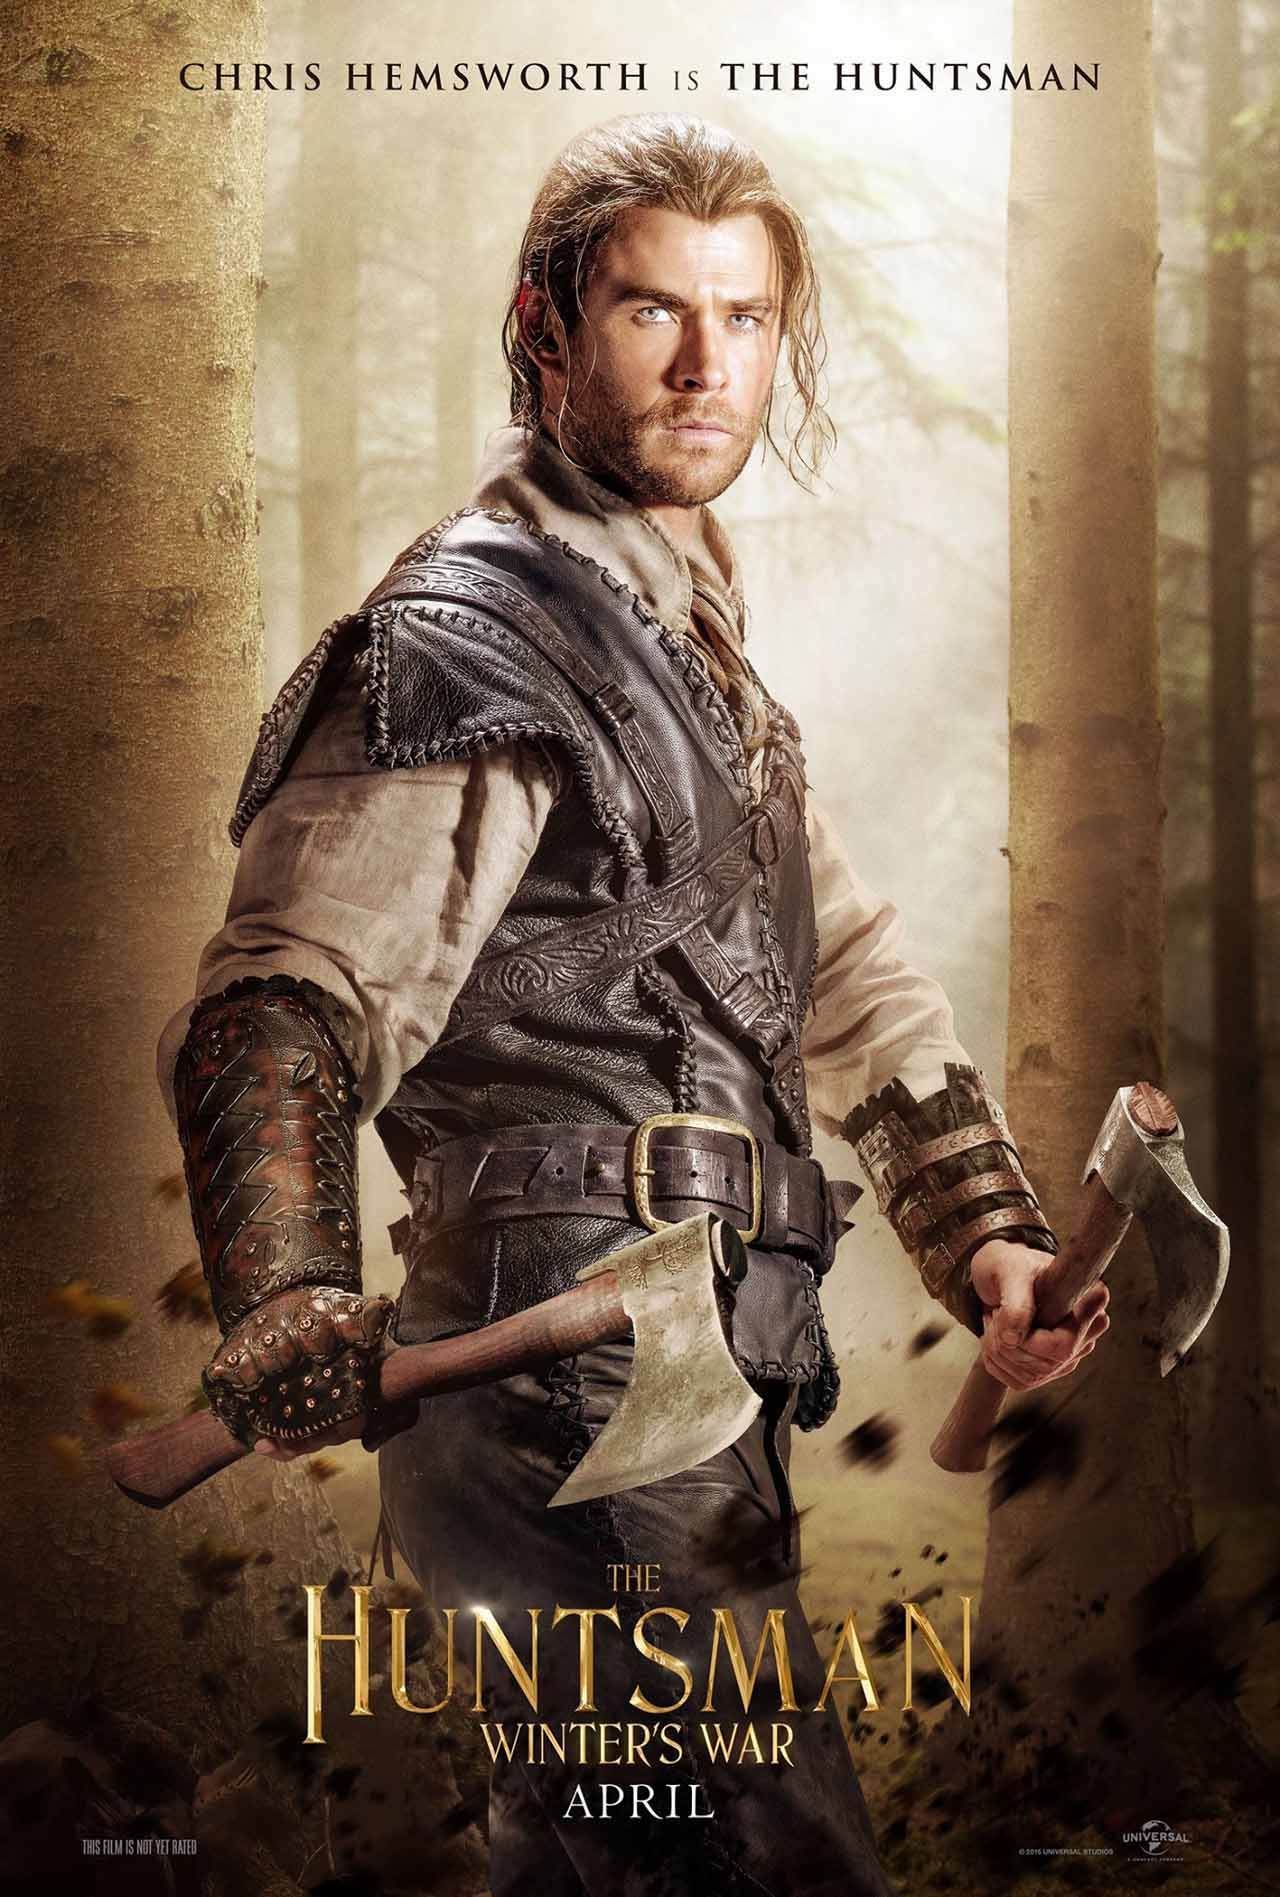 The Huntsman Winter's War: Christ Hemsworth nel character poster dedicato al Cacciatore